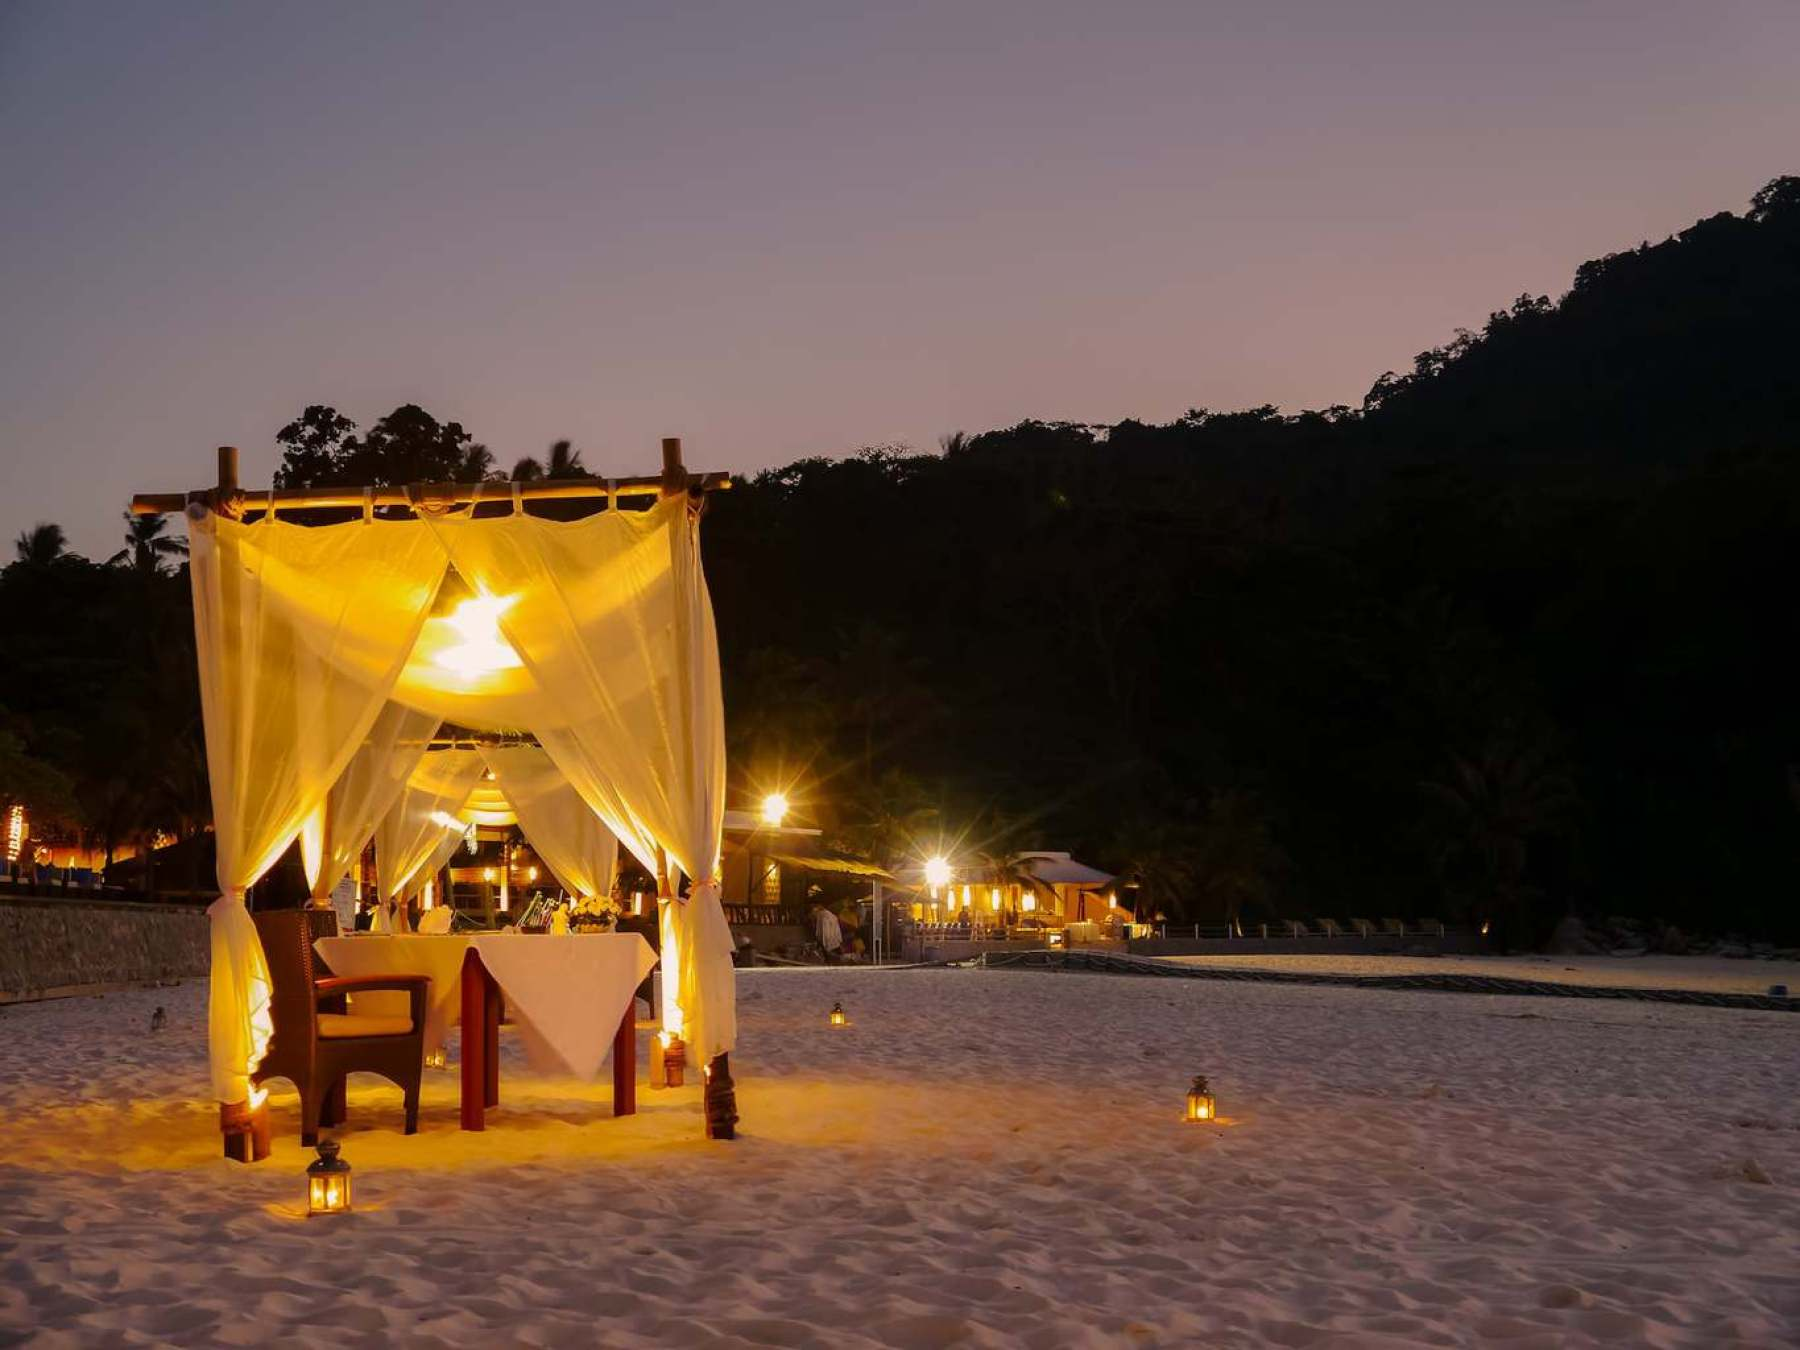 Our private tent on the beach